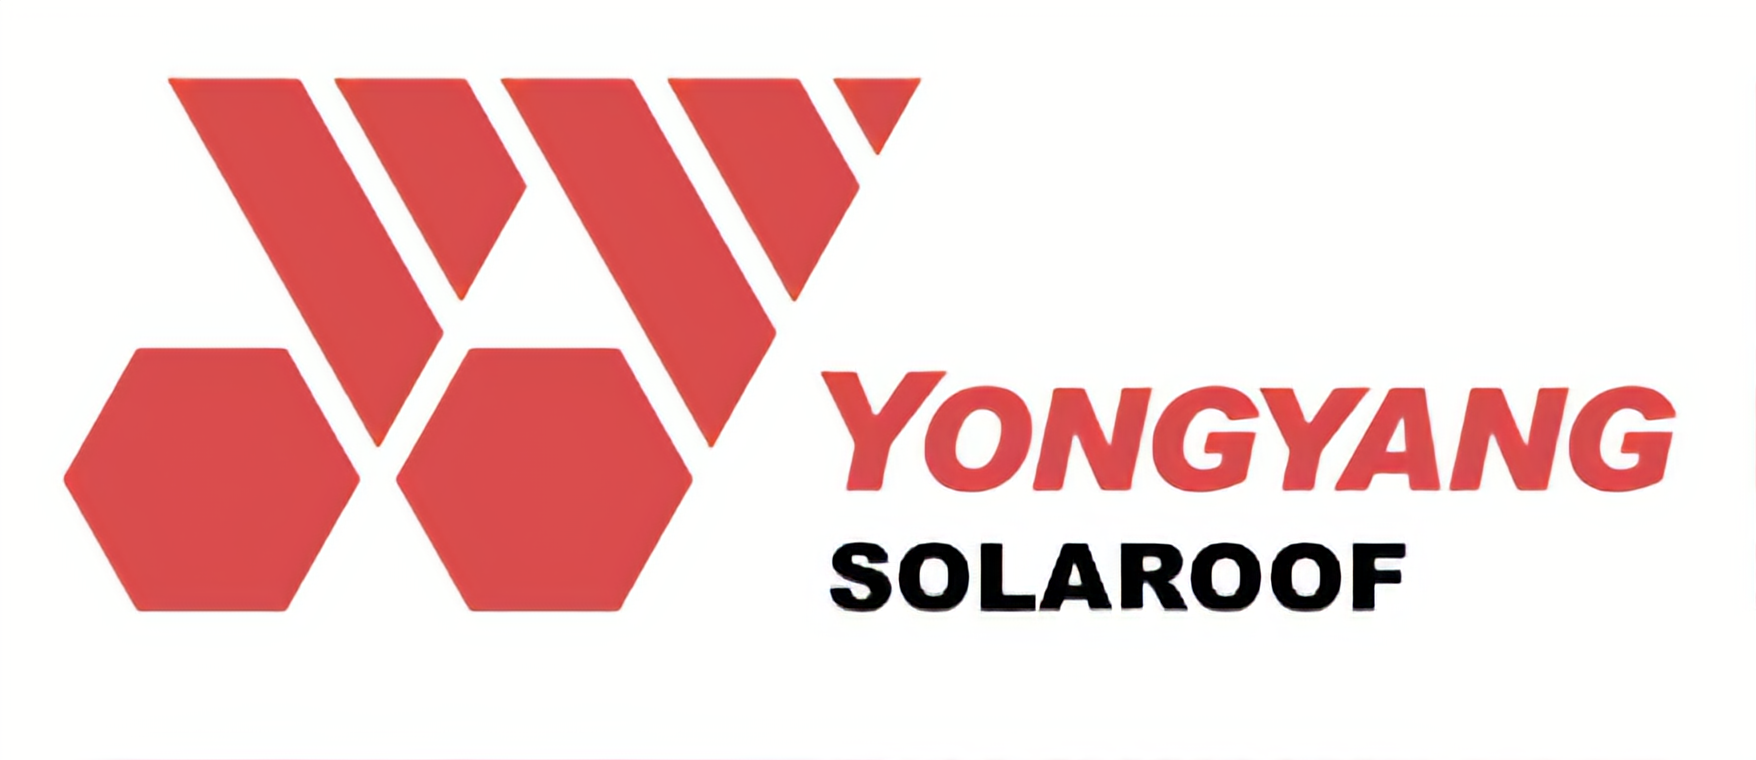 Yongyang Solaroof – Roofing and Solar Energy Solutions Malaysia